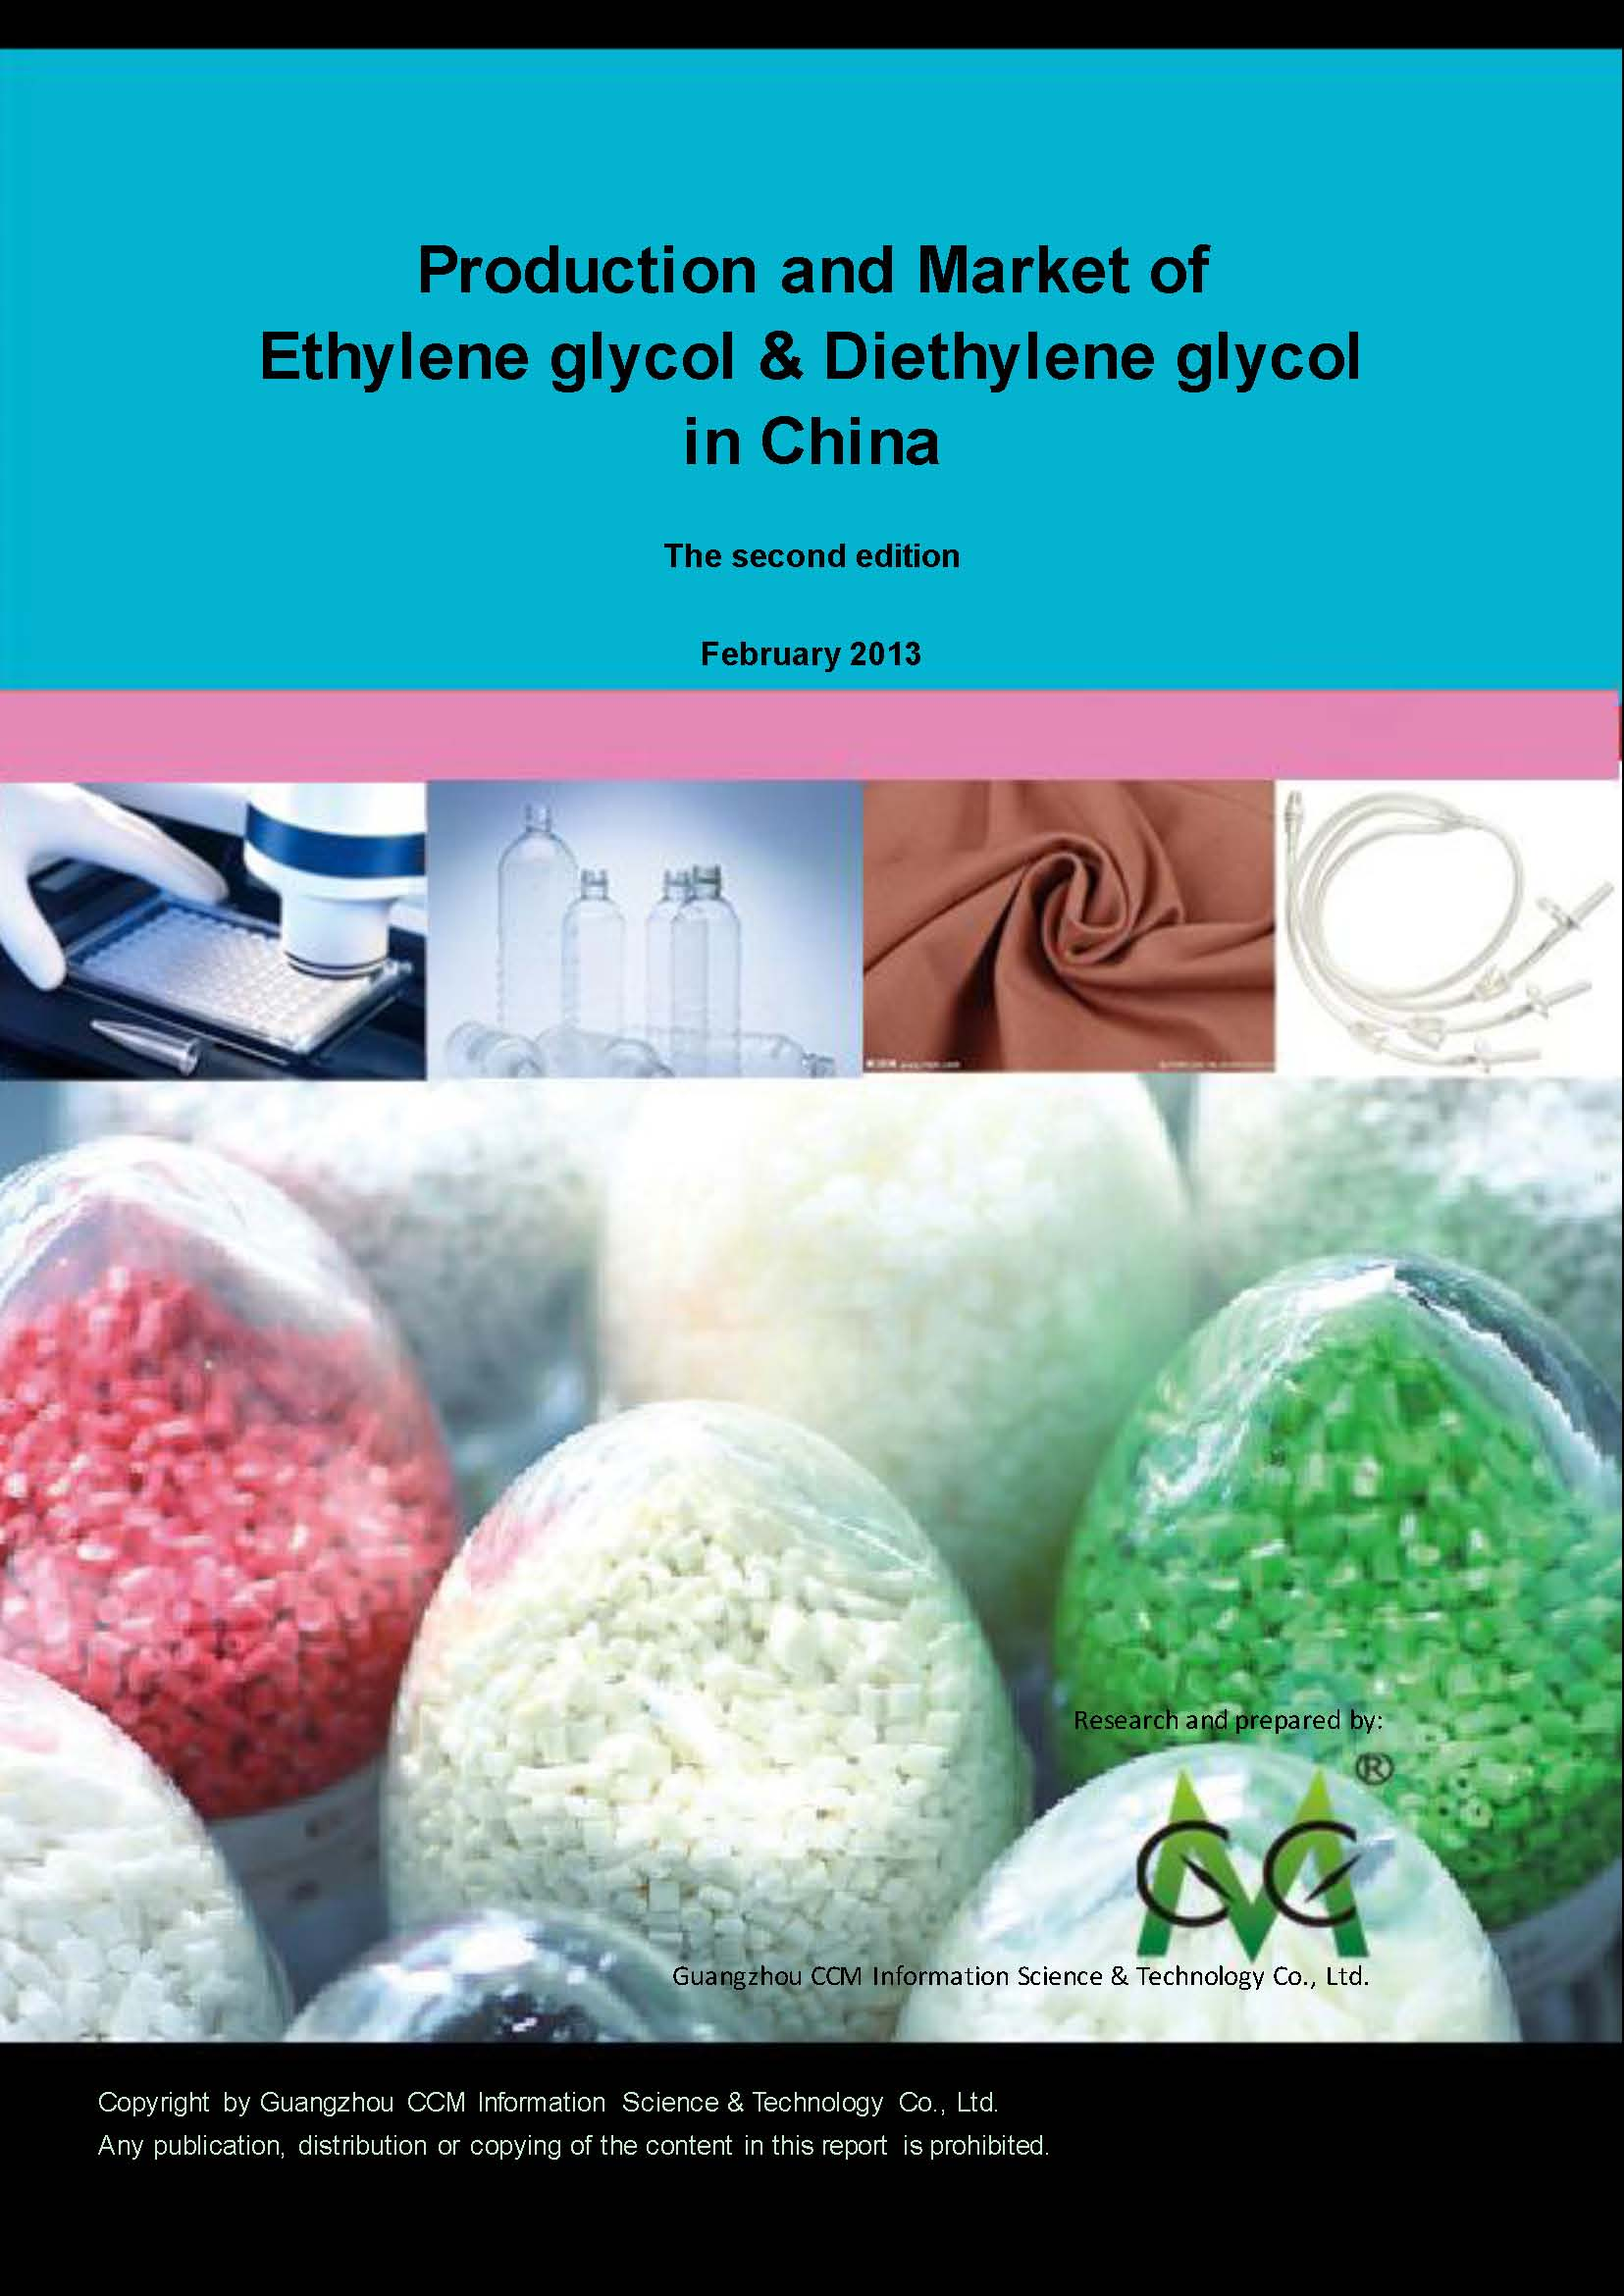 Production and Market of Ethylene Glycol and Diethylene Glycol in China